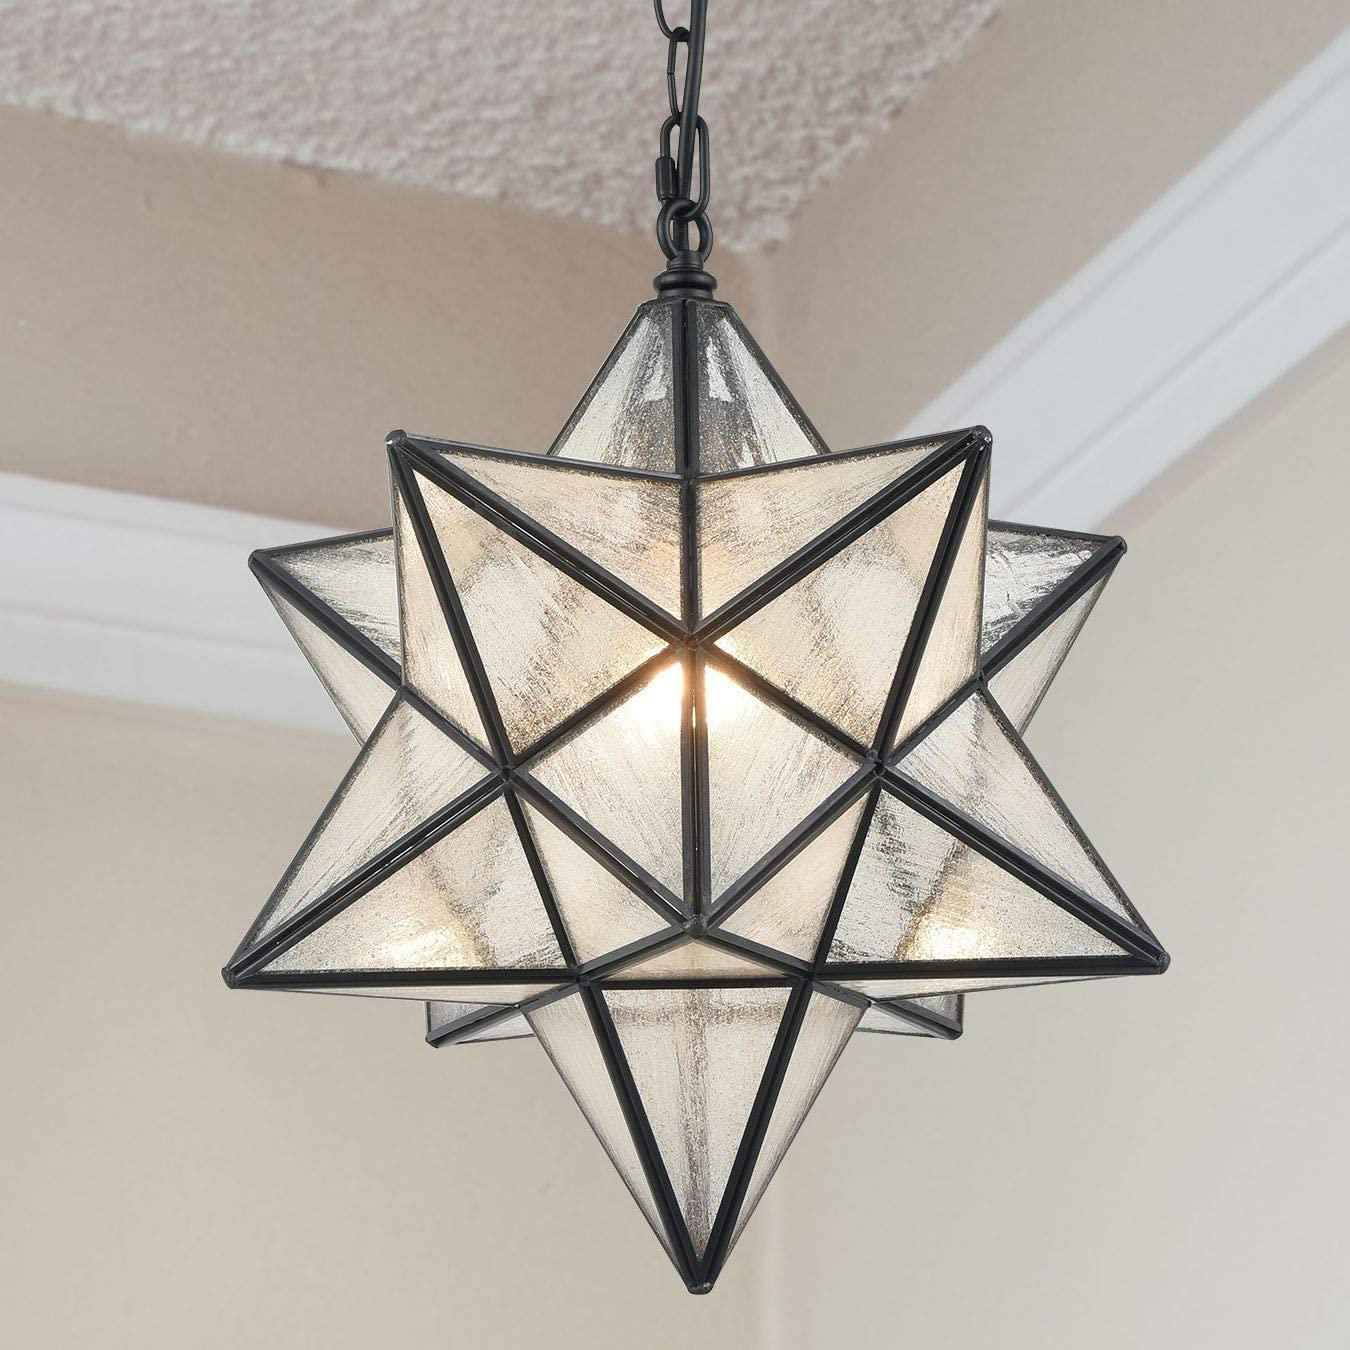 Moravian Star Pendant Light Frosted/&Crystal Metal Glass Shade Lamp Ceiling Light